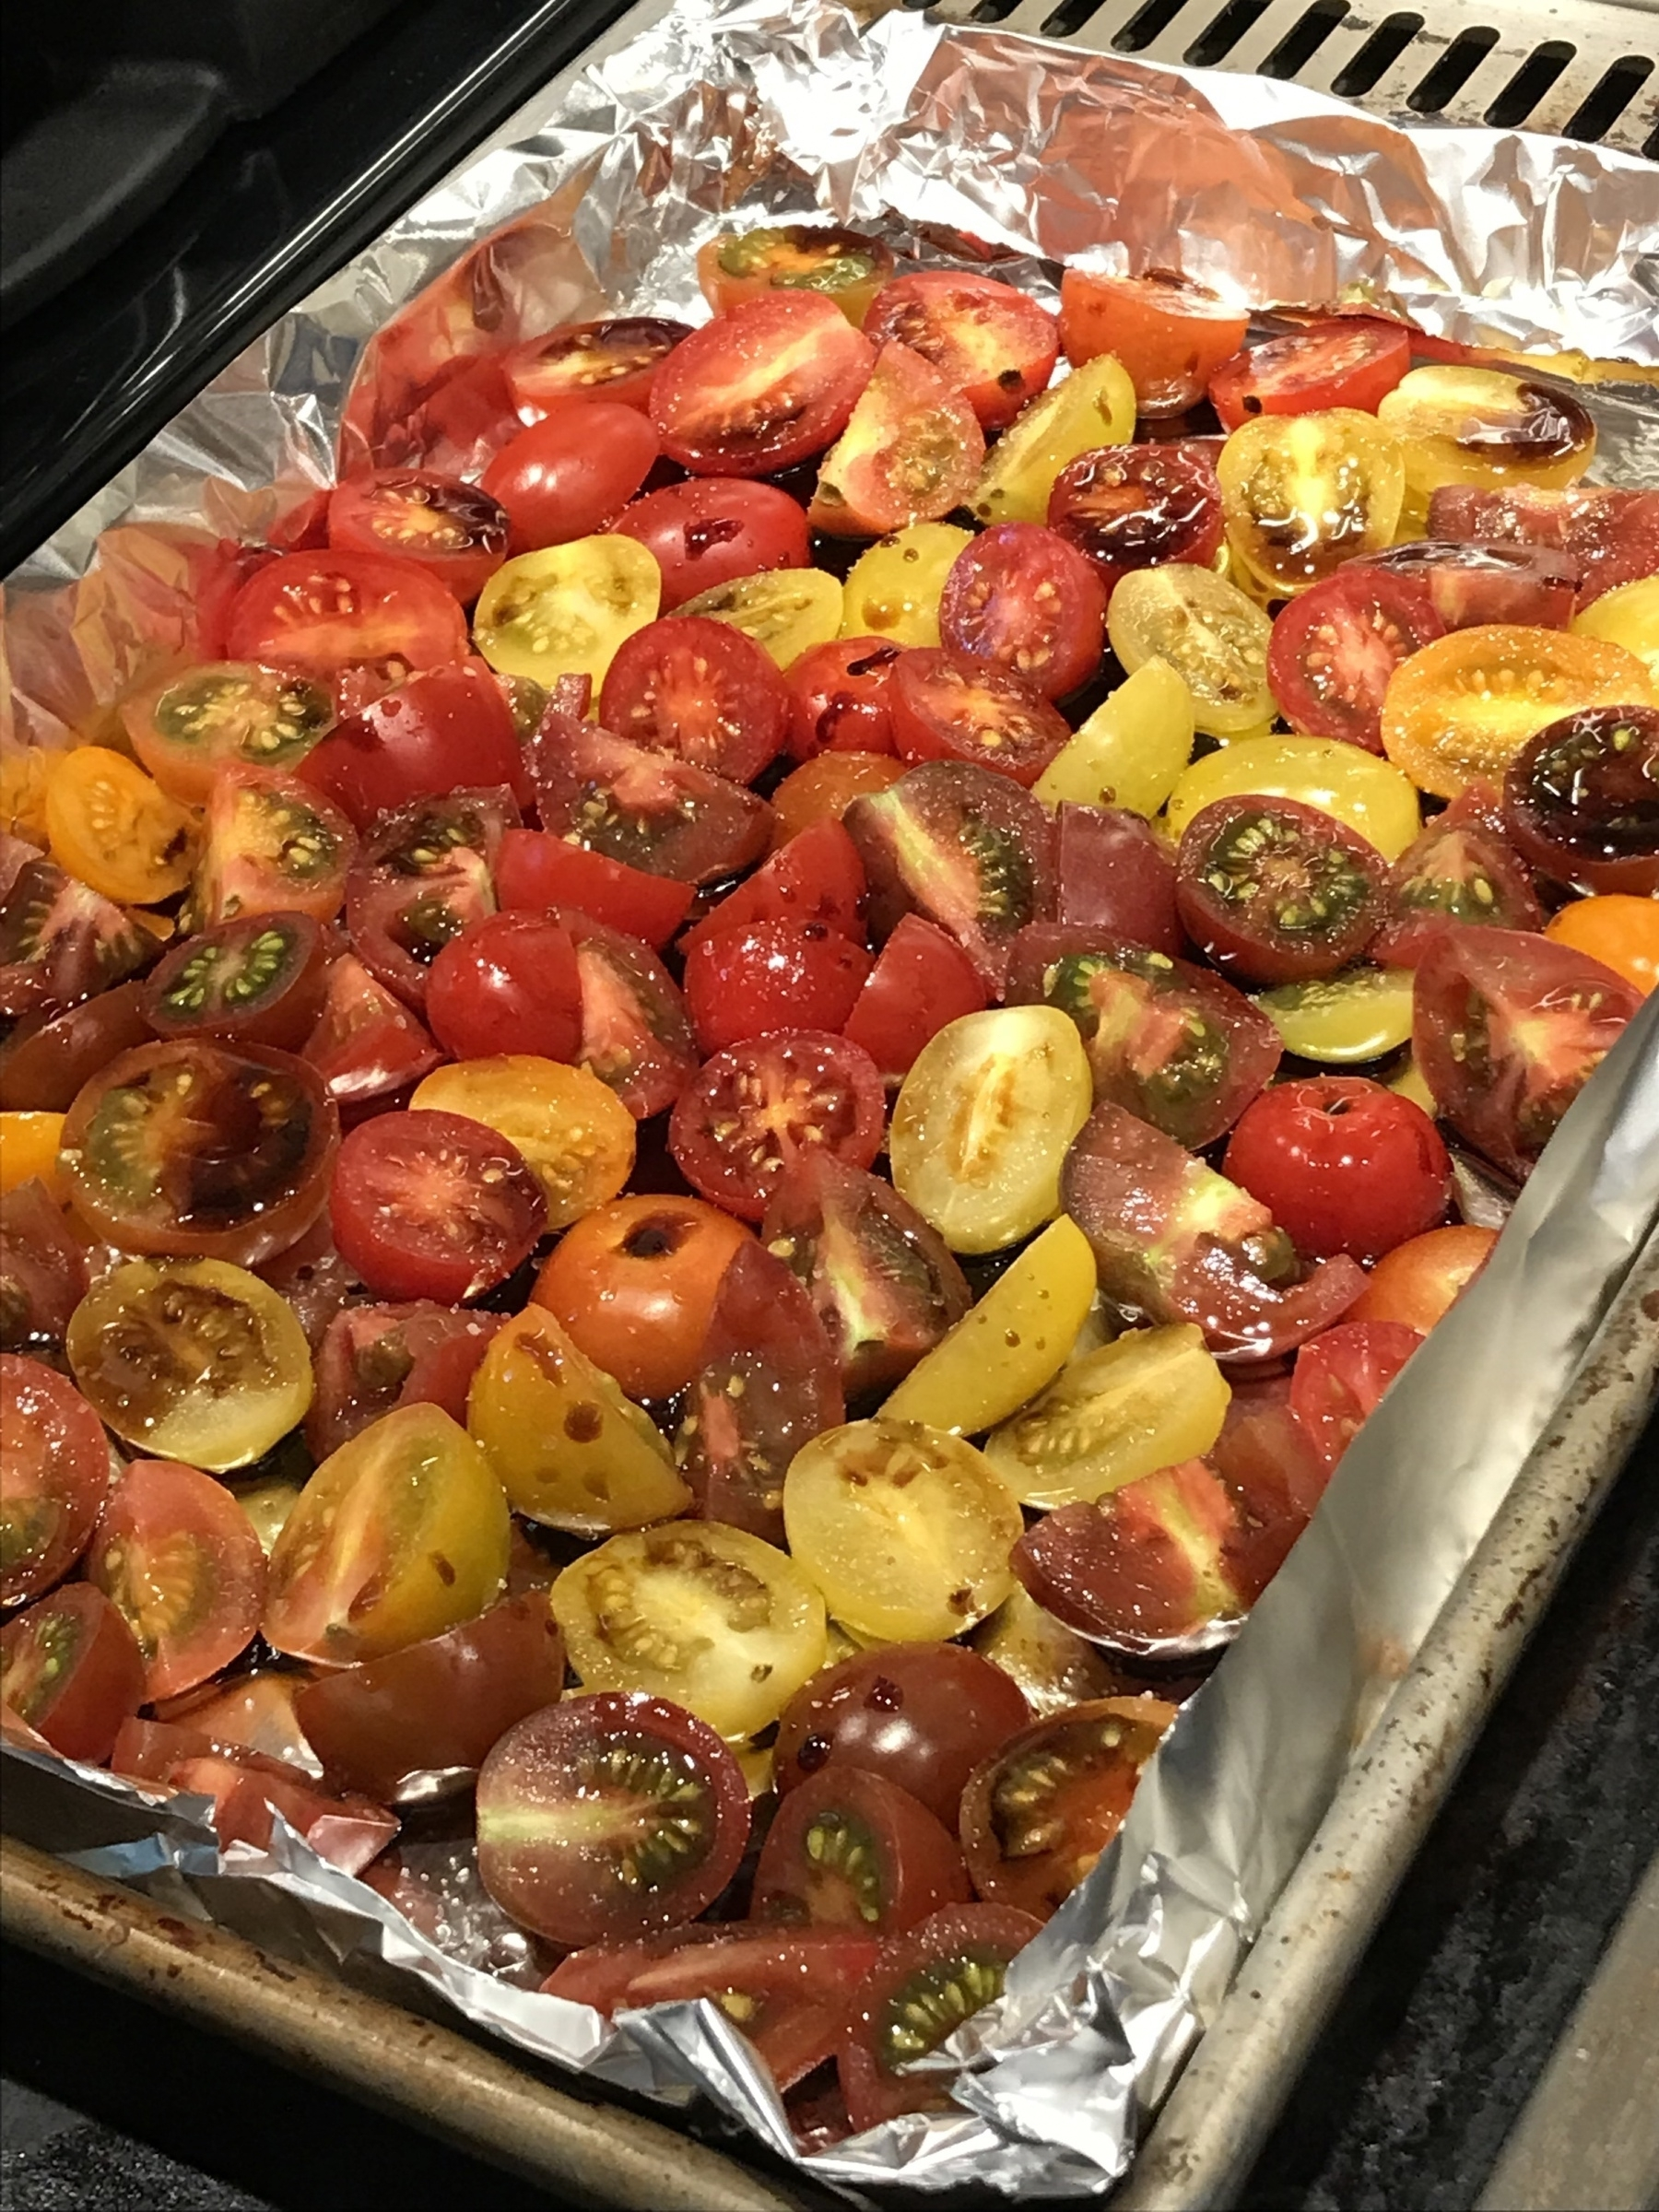 Sliced cherry tomatoes with olive oil and balsamic